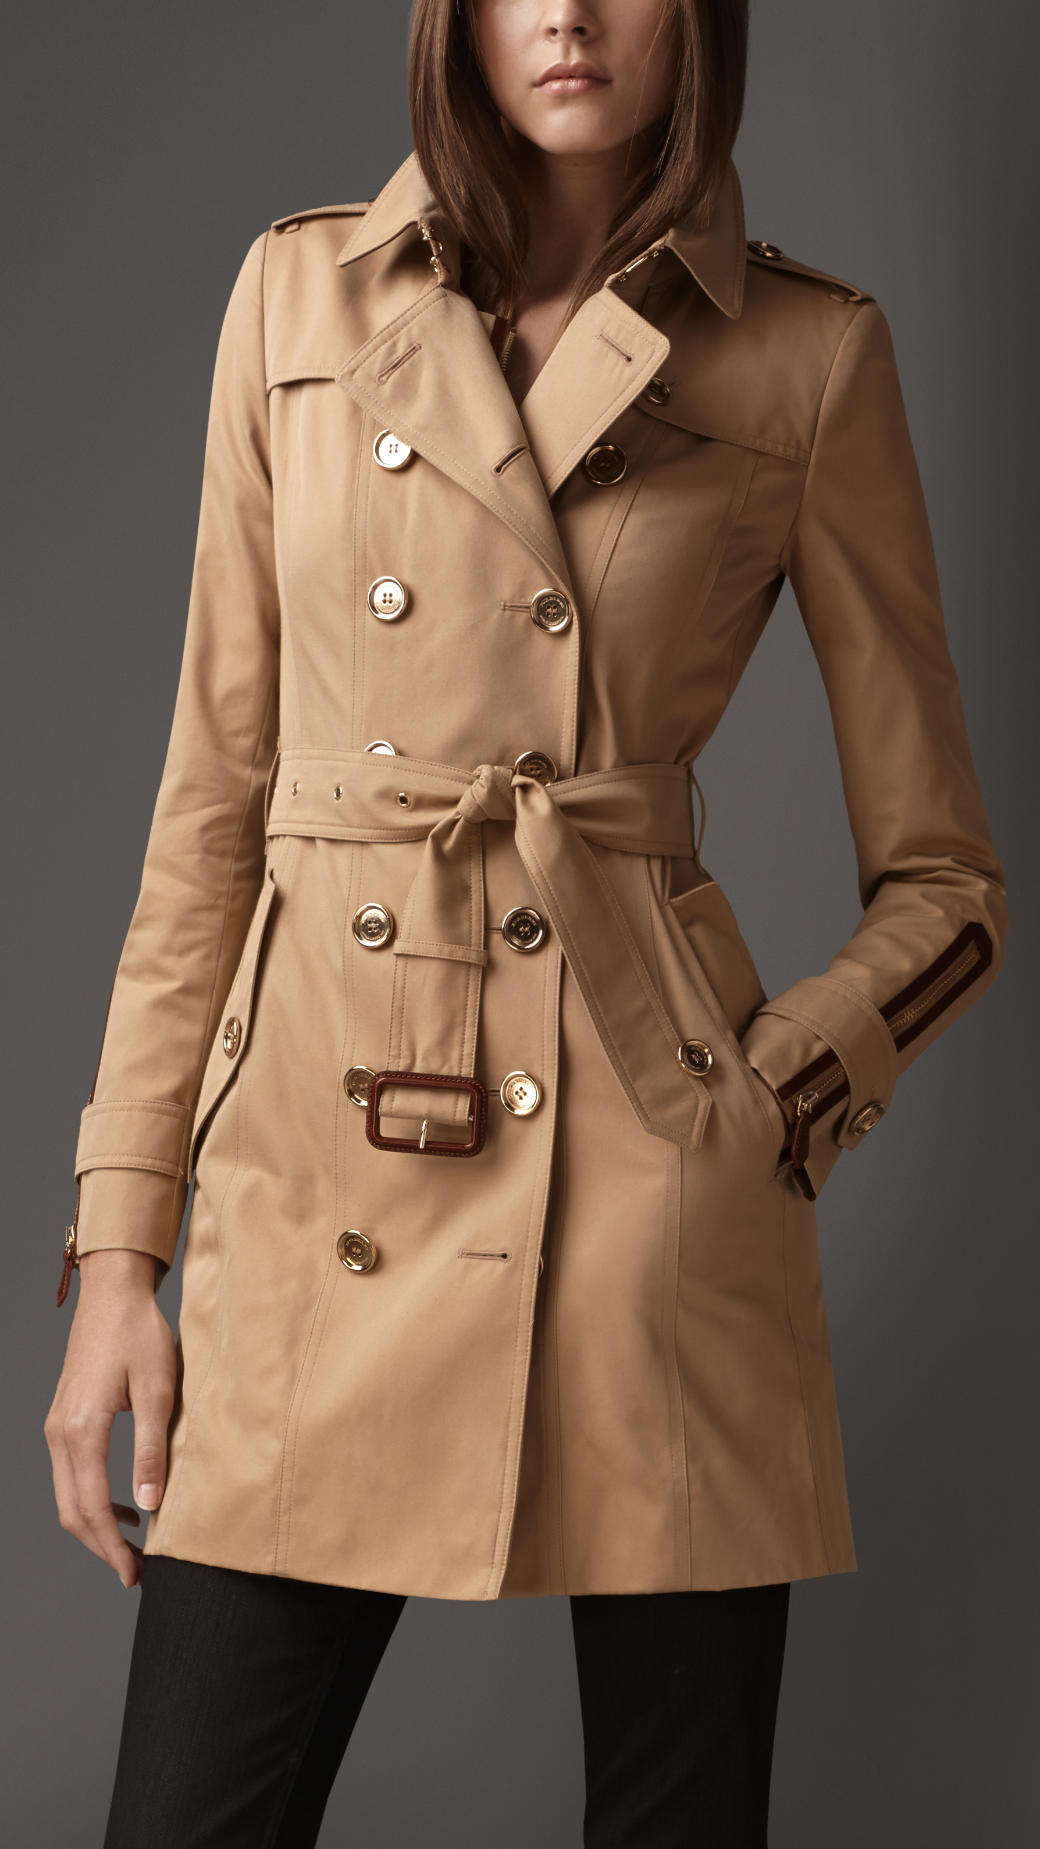 burberry trench coat sale outlet k3cj  burberry trench coat buttons